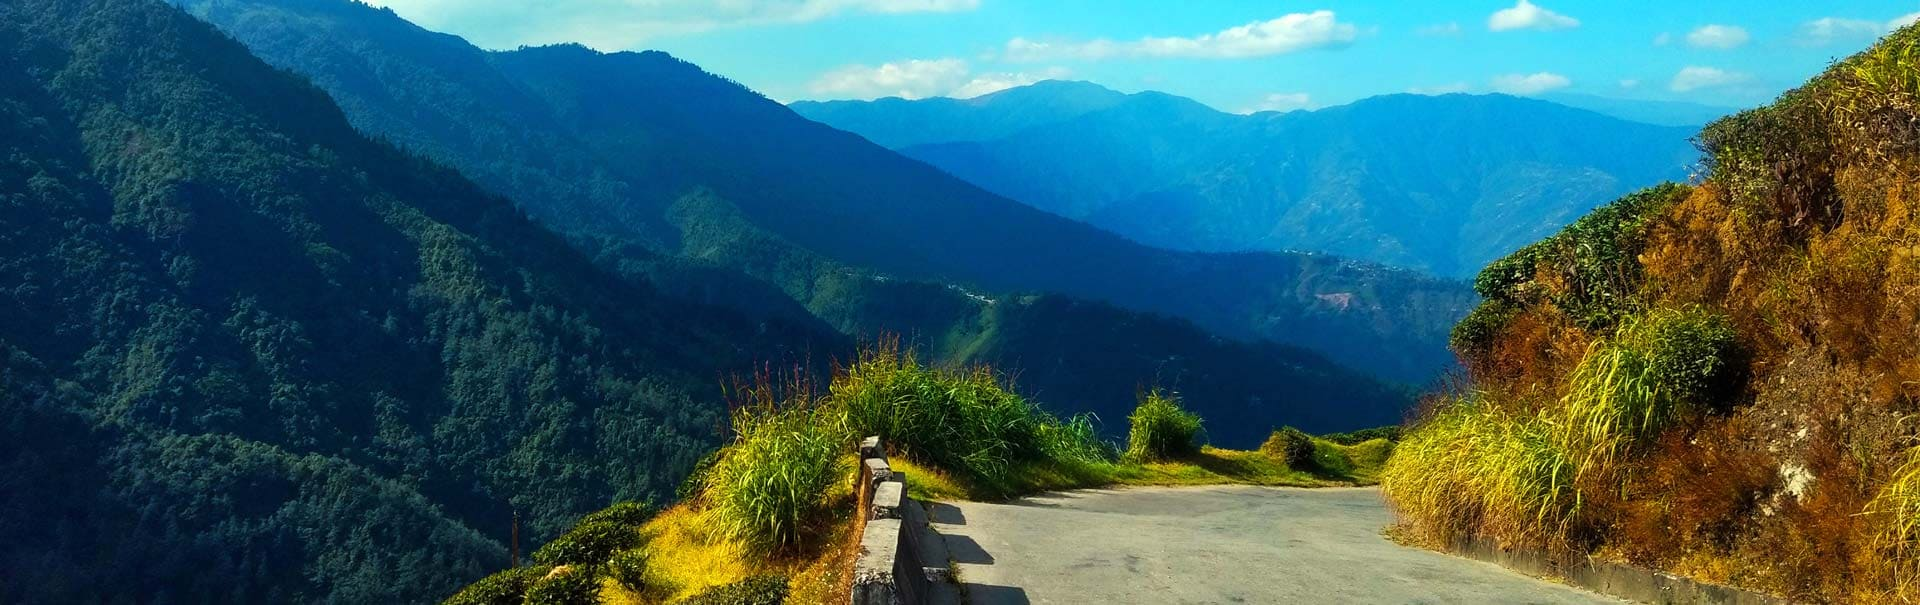 darjeeling,sikkim,darjeeling tour,tailor made holidays,vacation,india tour,incredible india